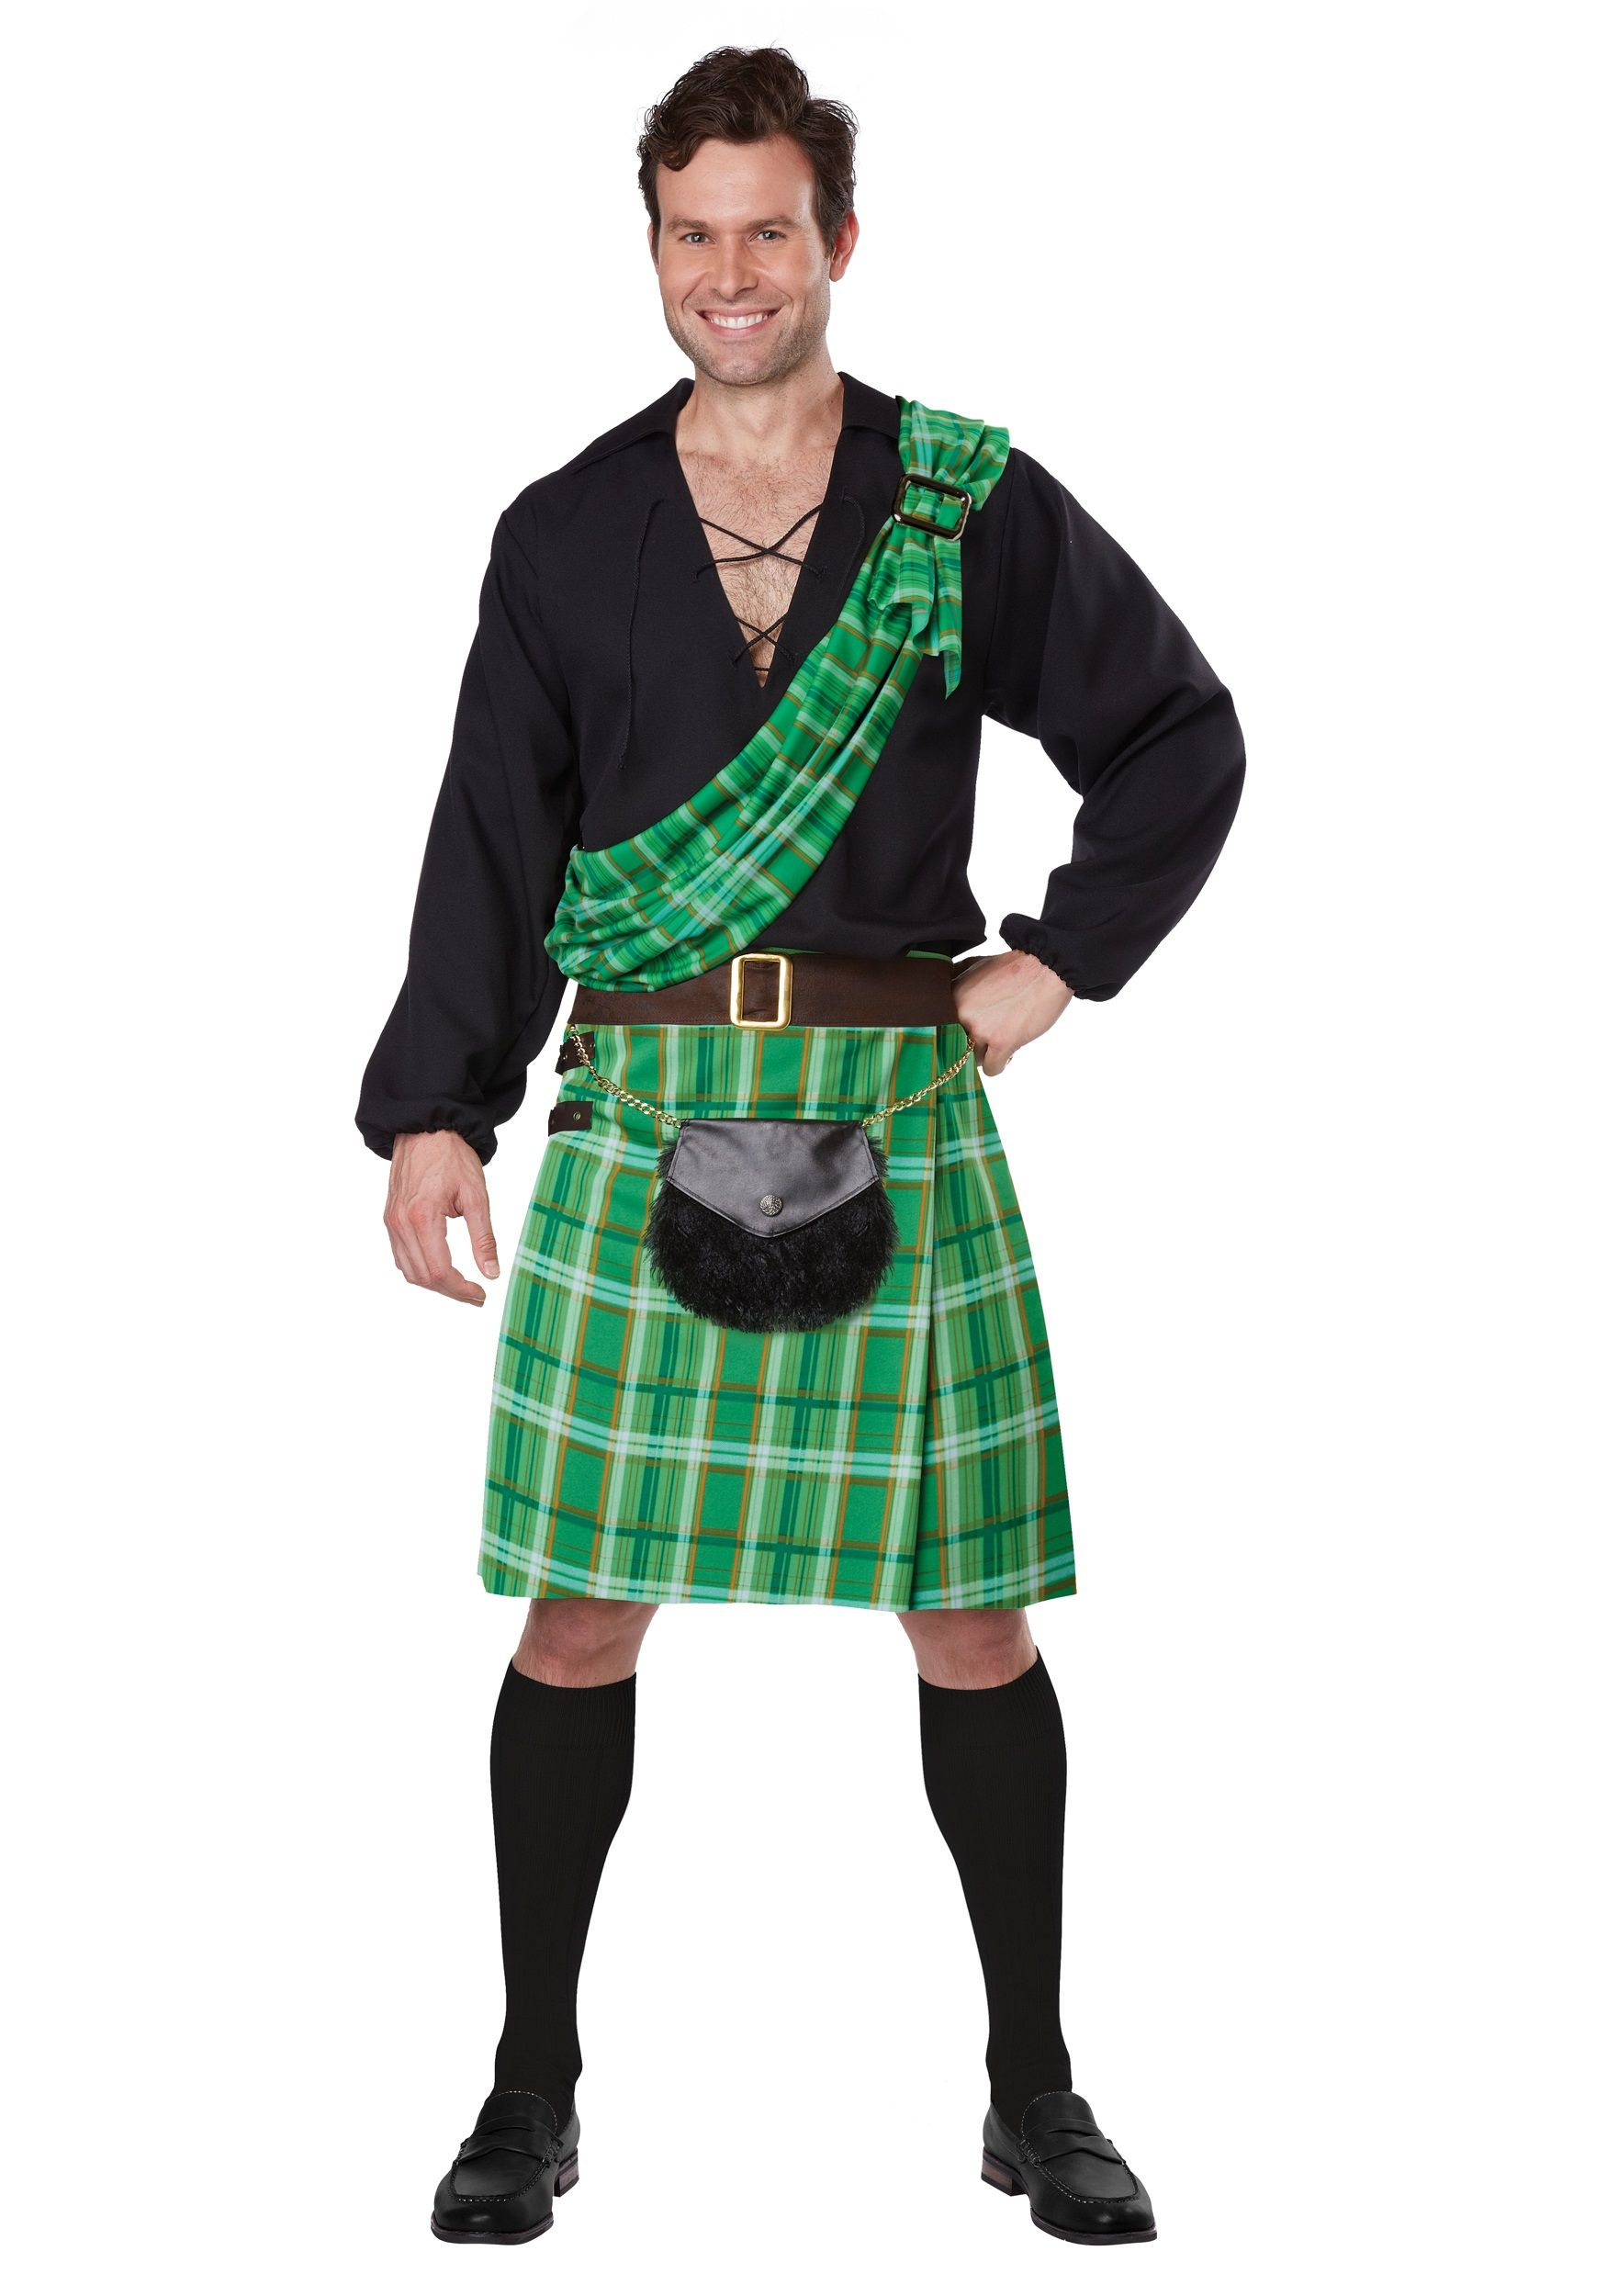 00a63eee9 halloween costume for men. scottish , kilt cosplay | Scottish ...